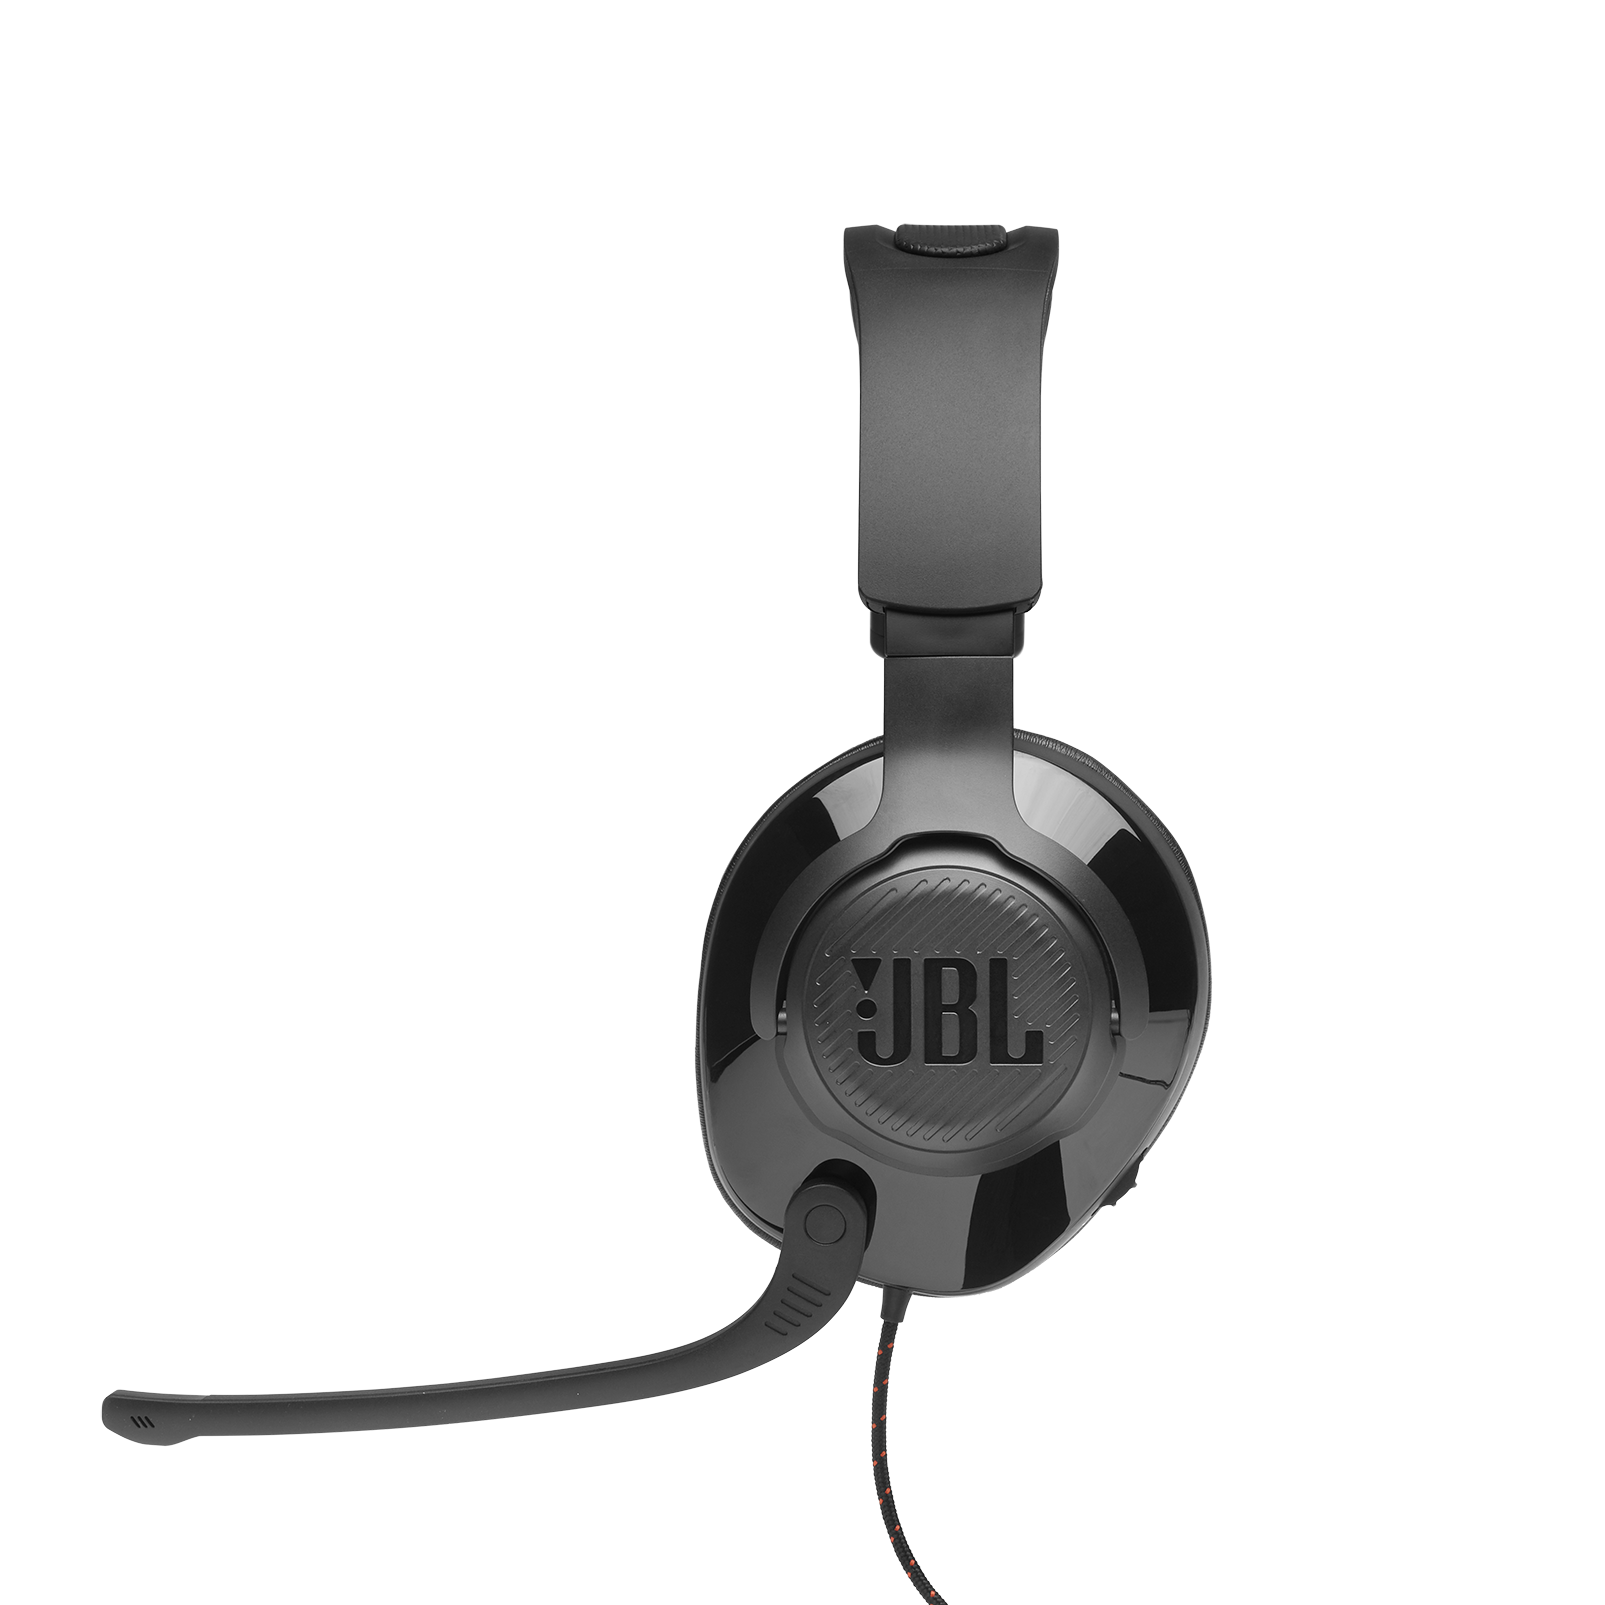 JBL Quantum 300 - Black - Hybrid wired over-ear gaming headset with flip-up mic - Detailshot 6